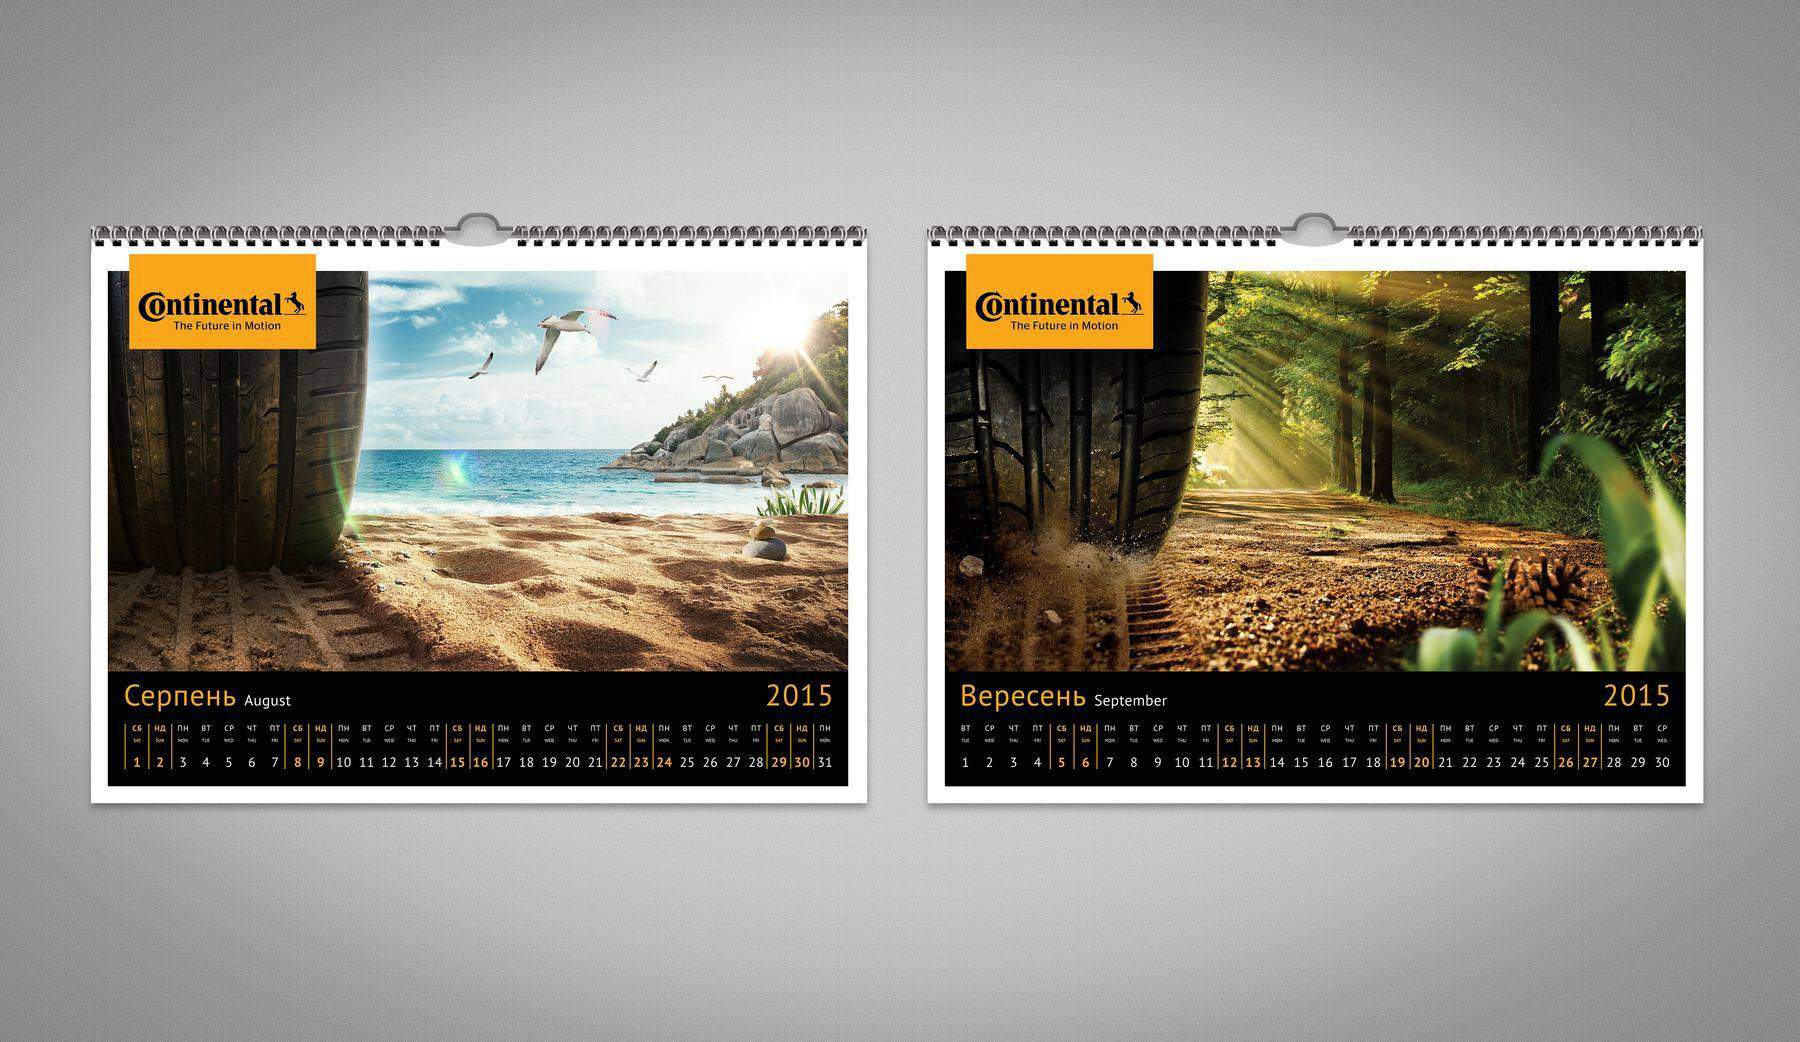 Wall calendar idea generation and graphic design portfolio